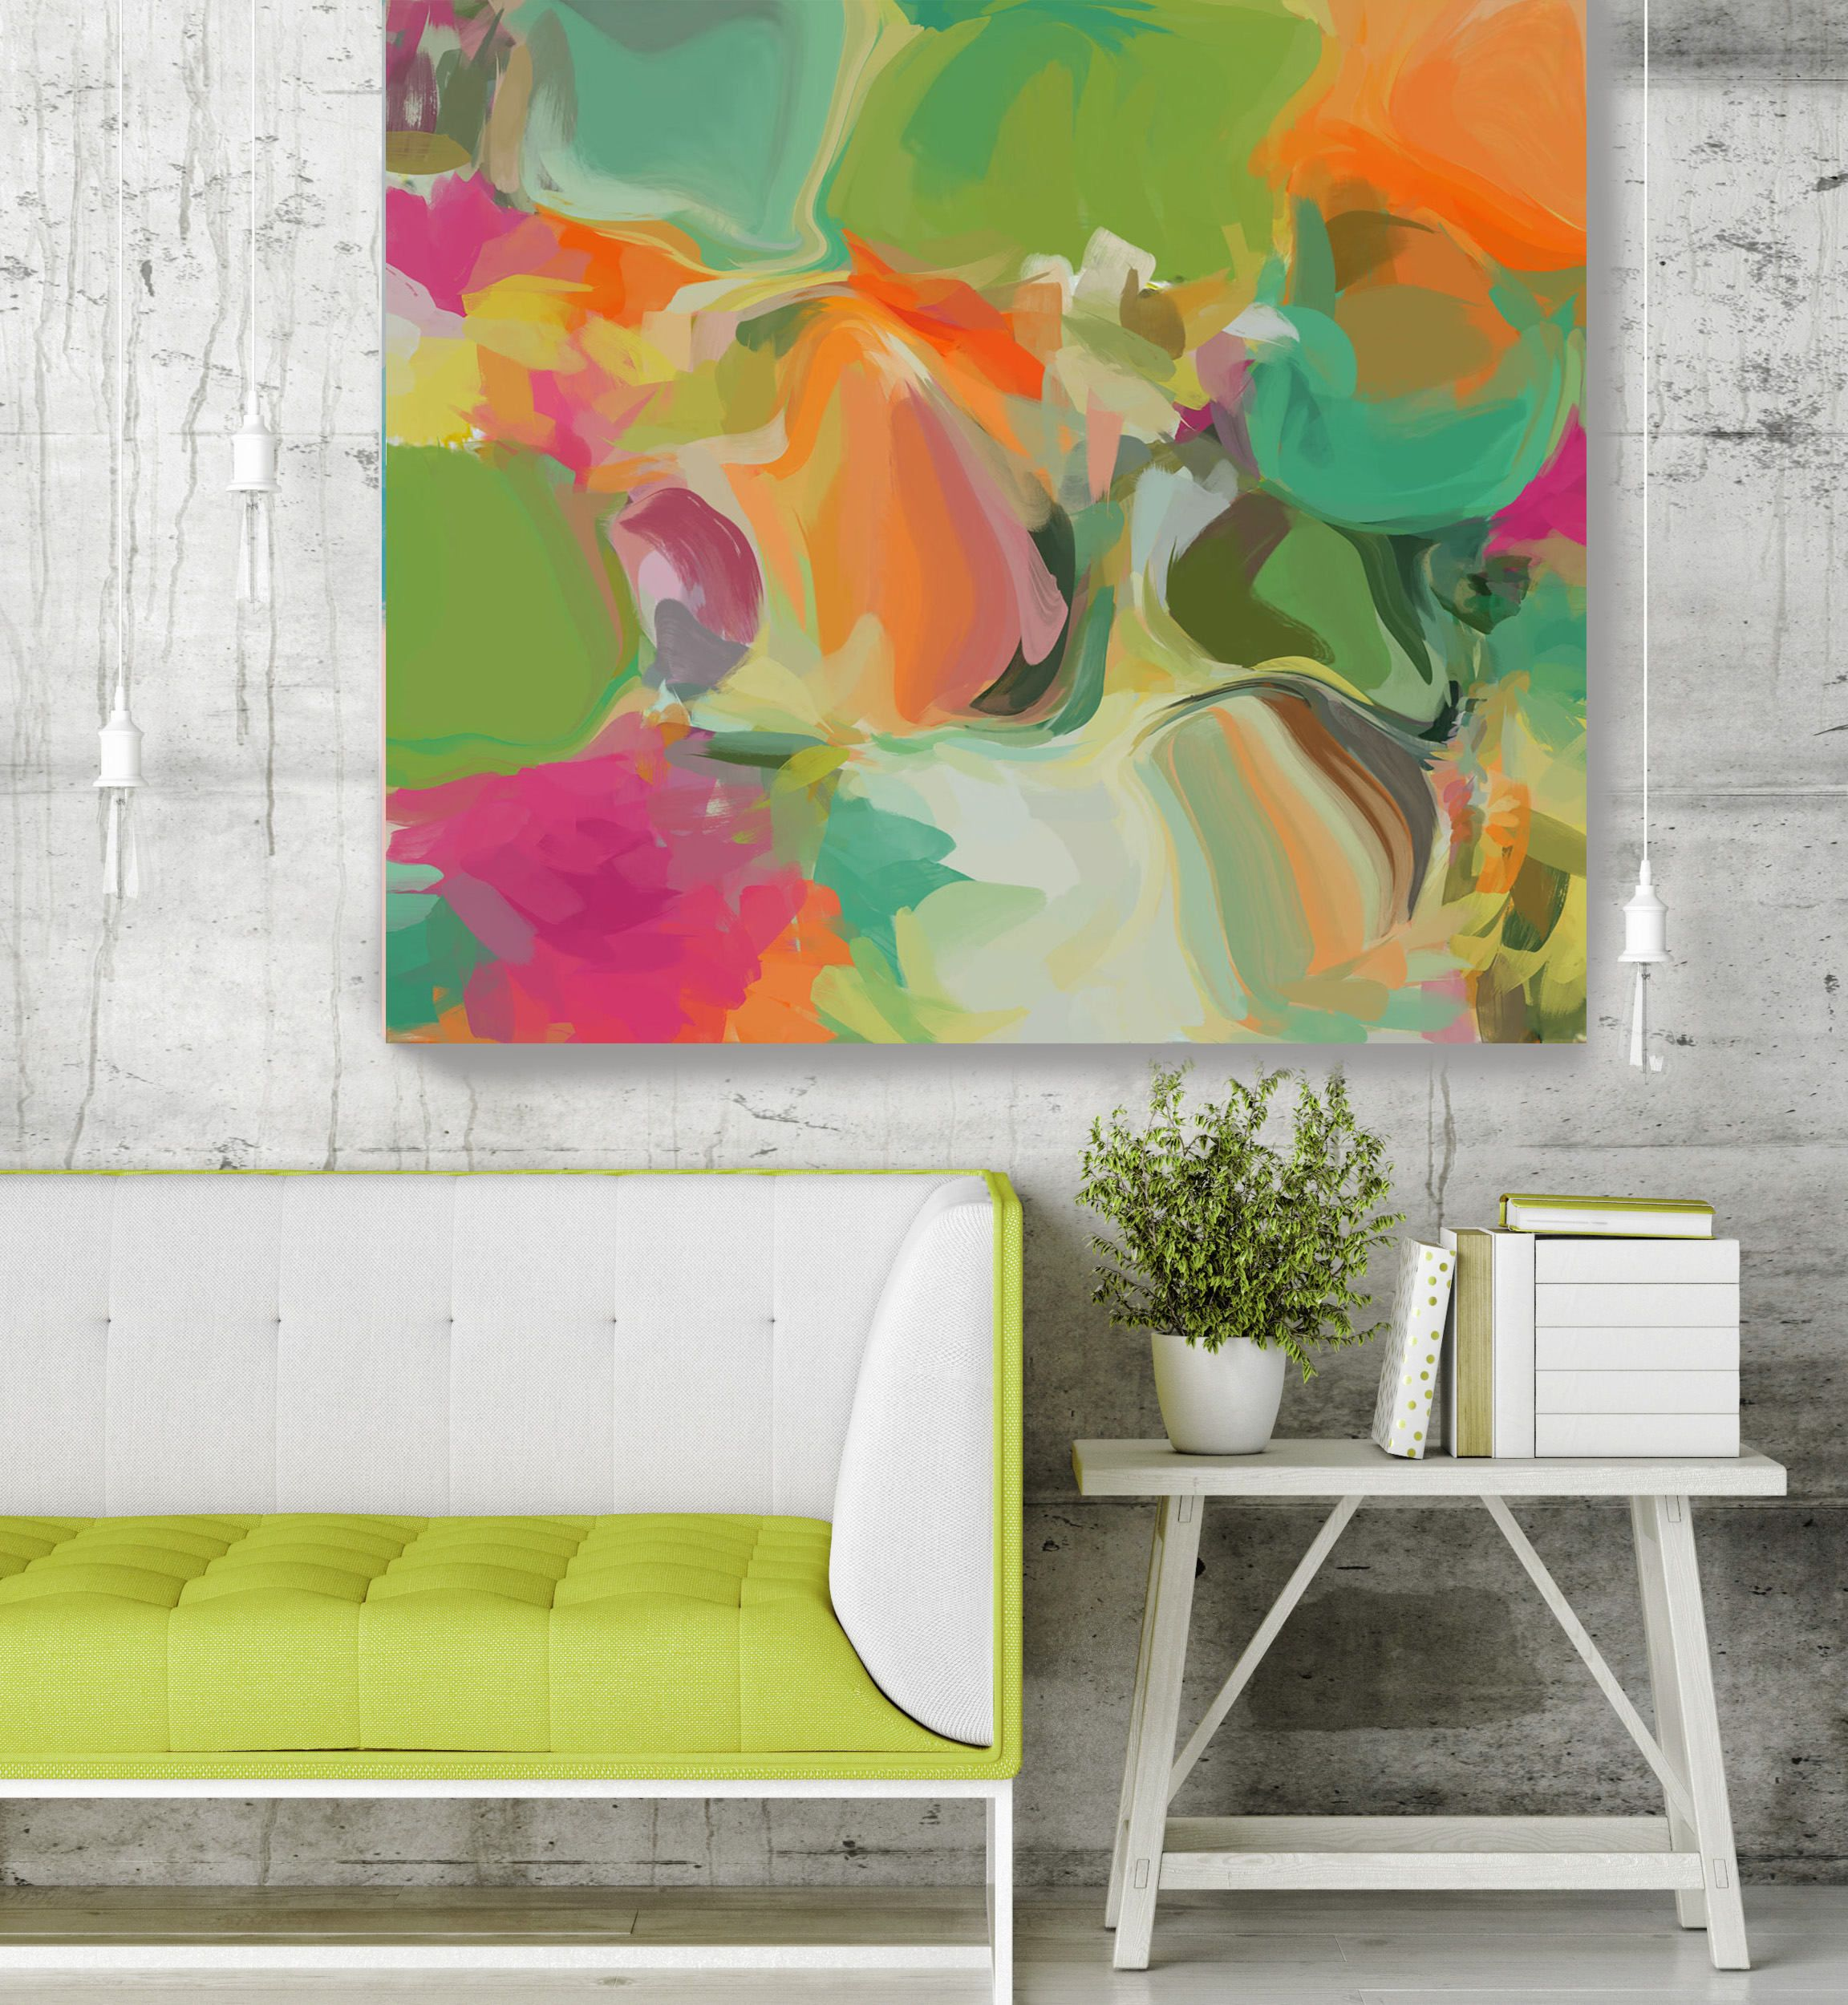 Green Orange Abstract Art, Wall Decor, Large Abstract Colorful Contemporary